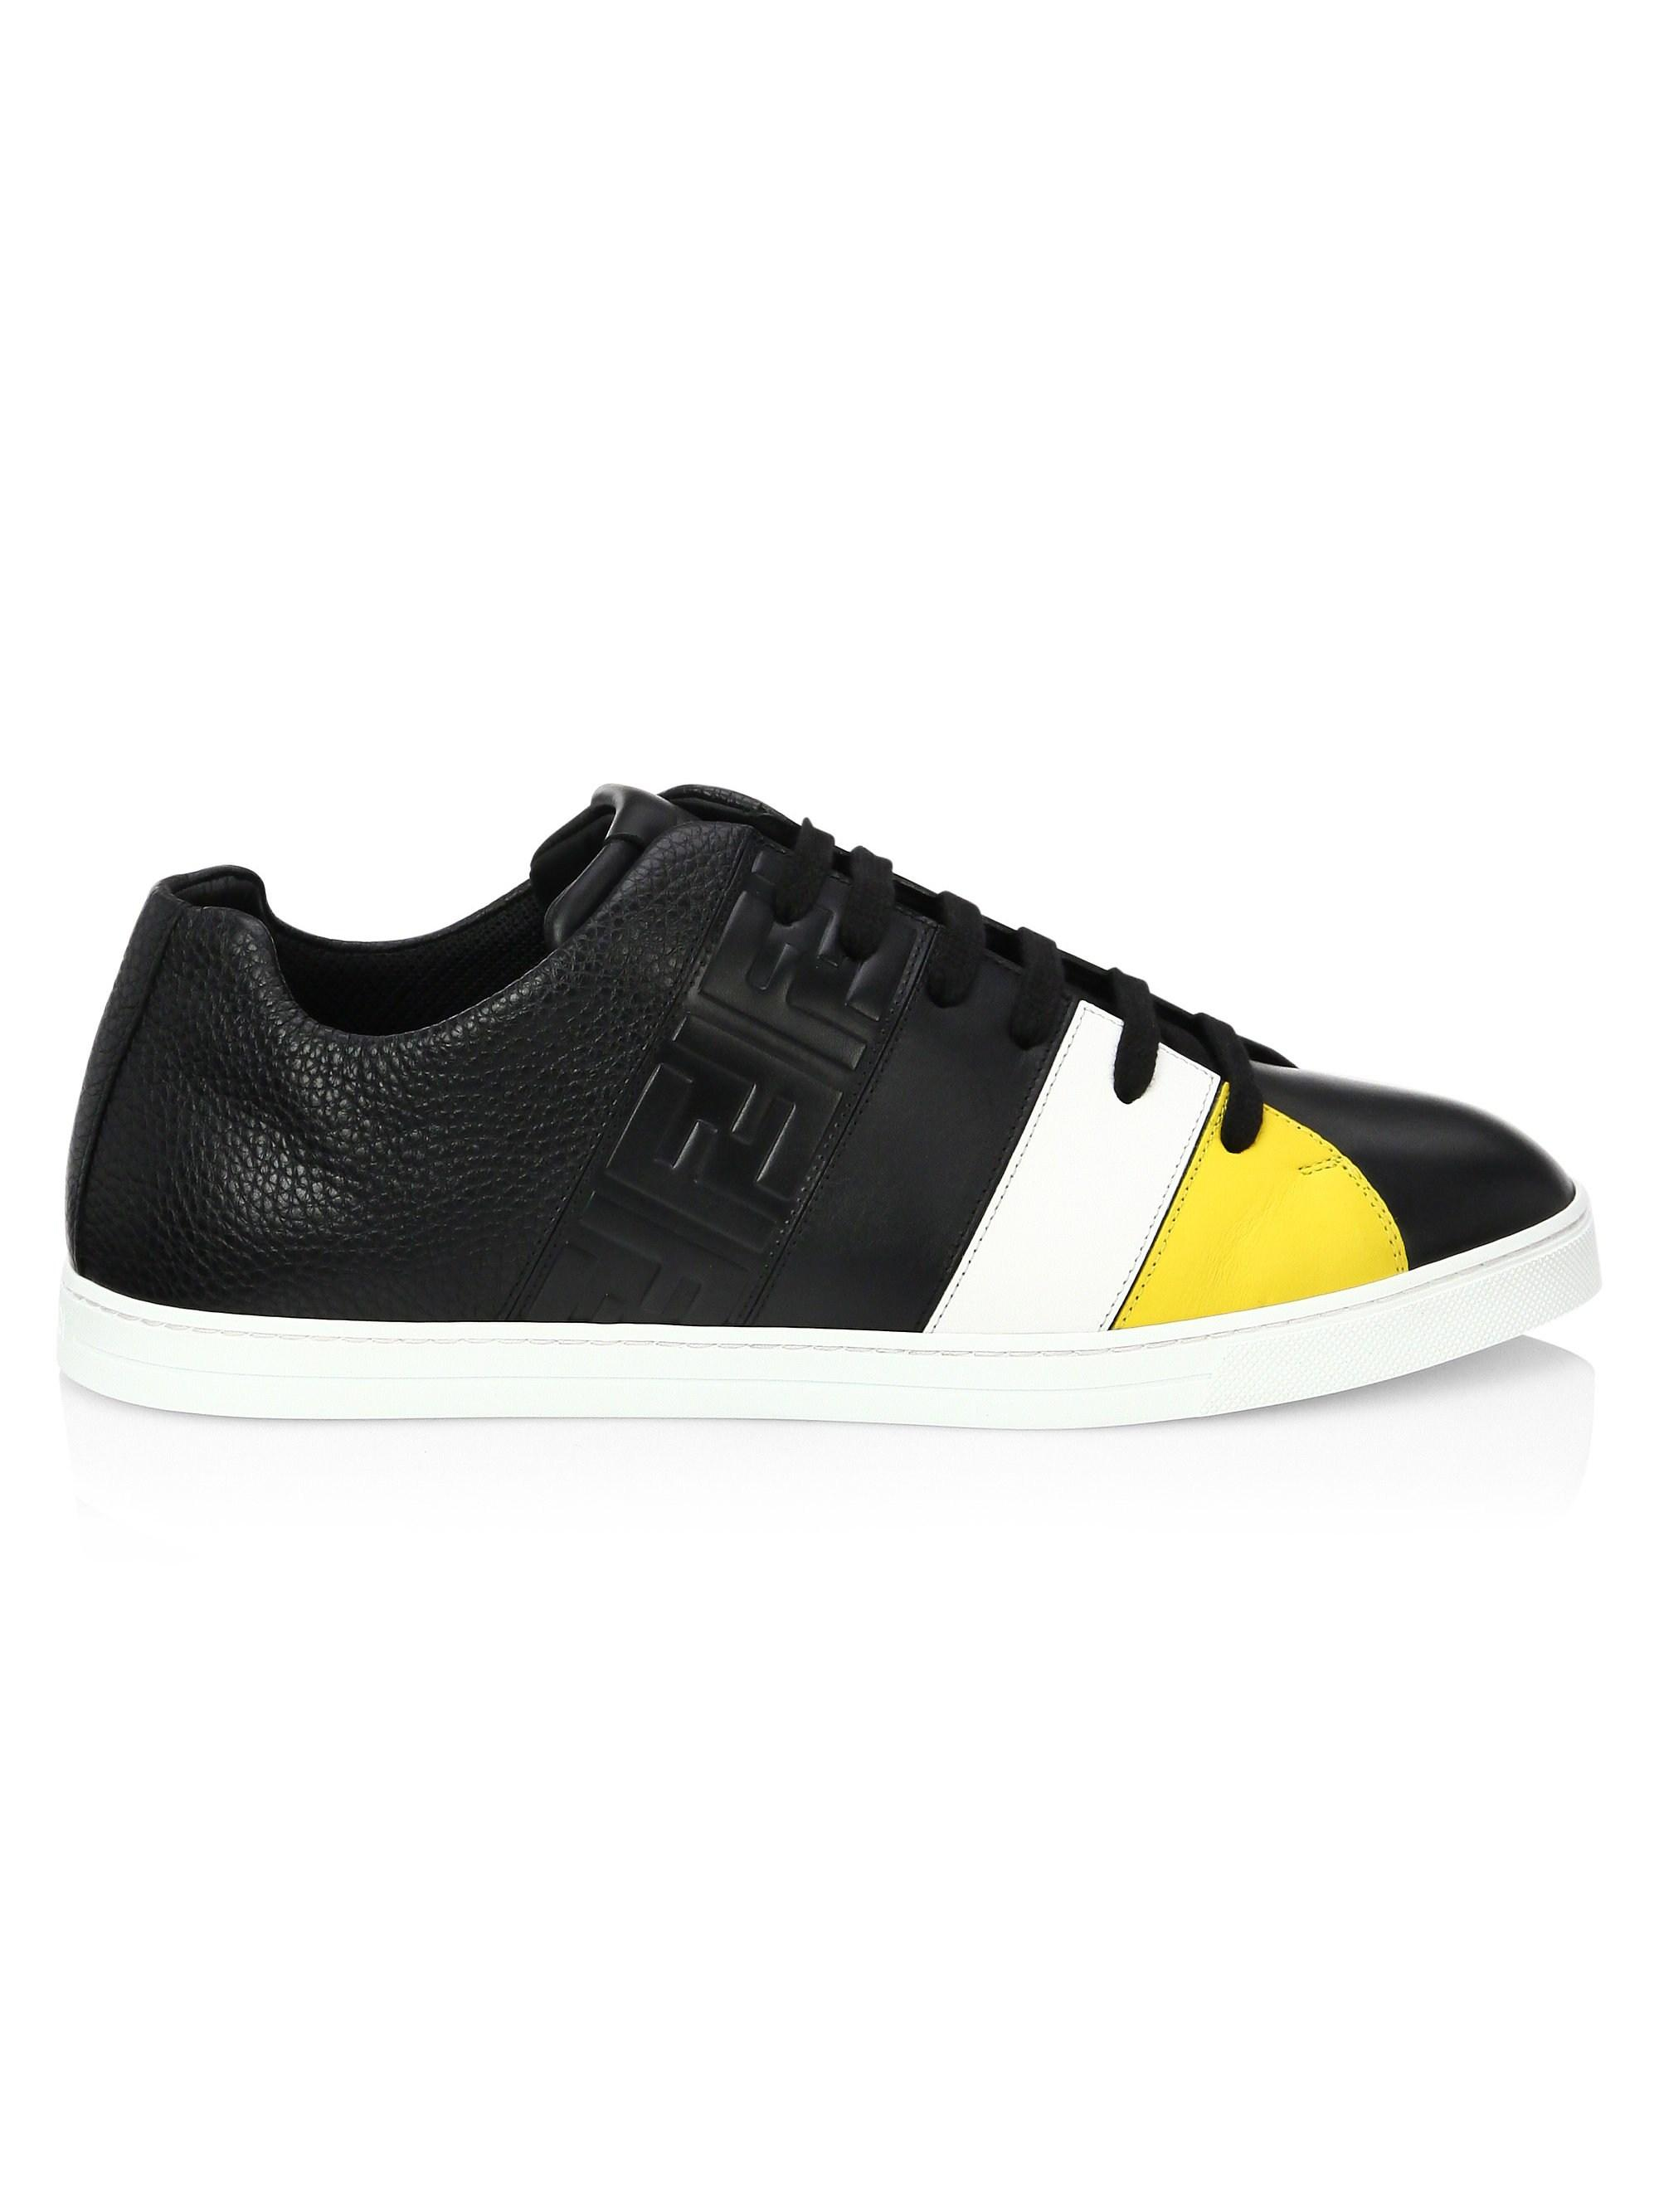 caf3ecc681 Fendi Men's Colorblock Leather Low-top Sneakers - Black - Size 13 Uk ...